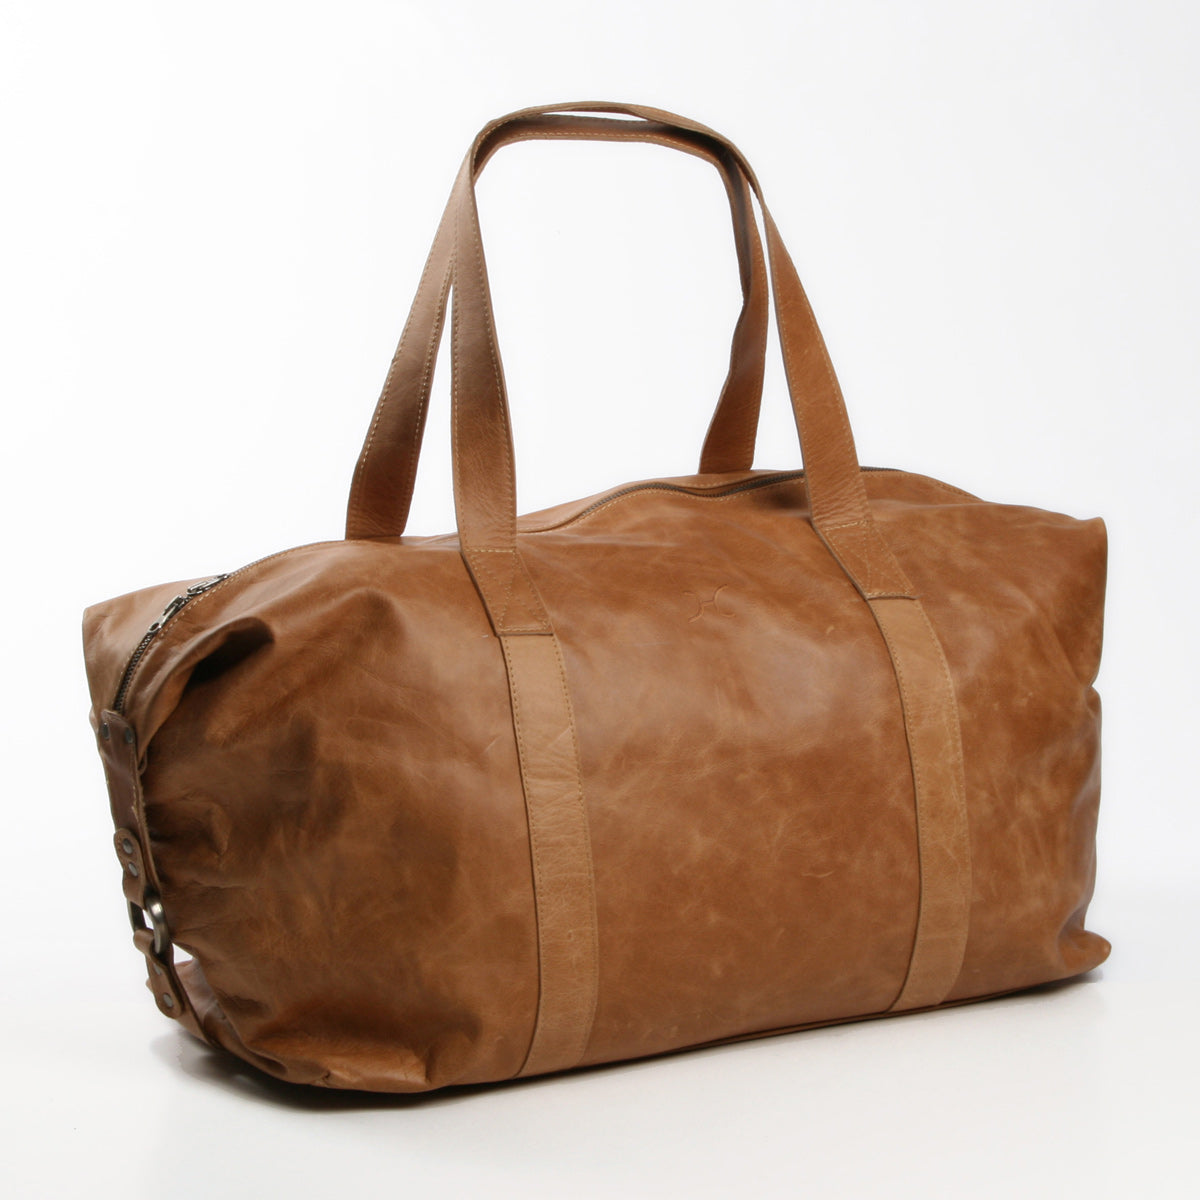 Thandana Duffel Bag - Hazlenut - Zufrique Boutique